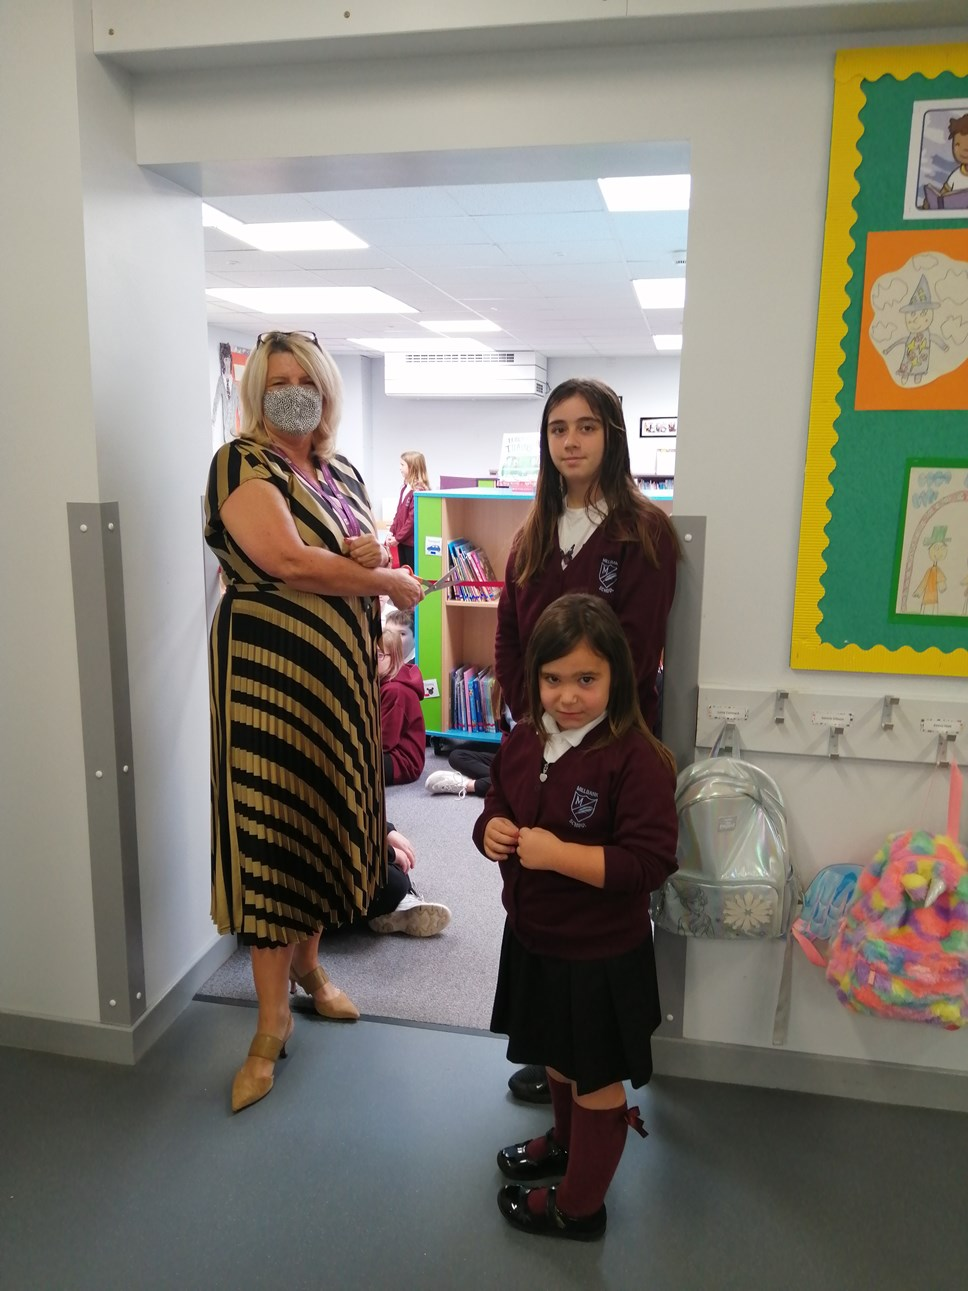 Opening of new Millbank Primary School library